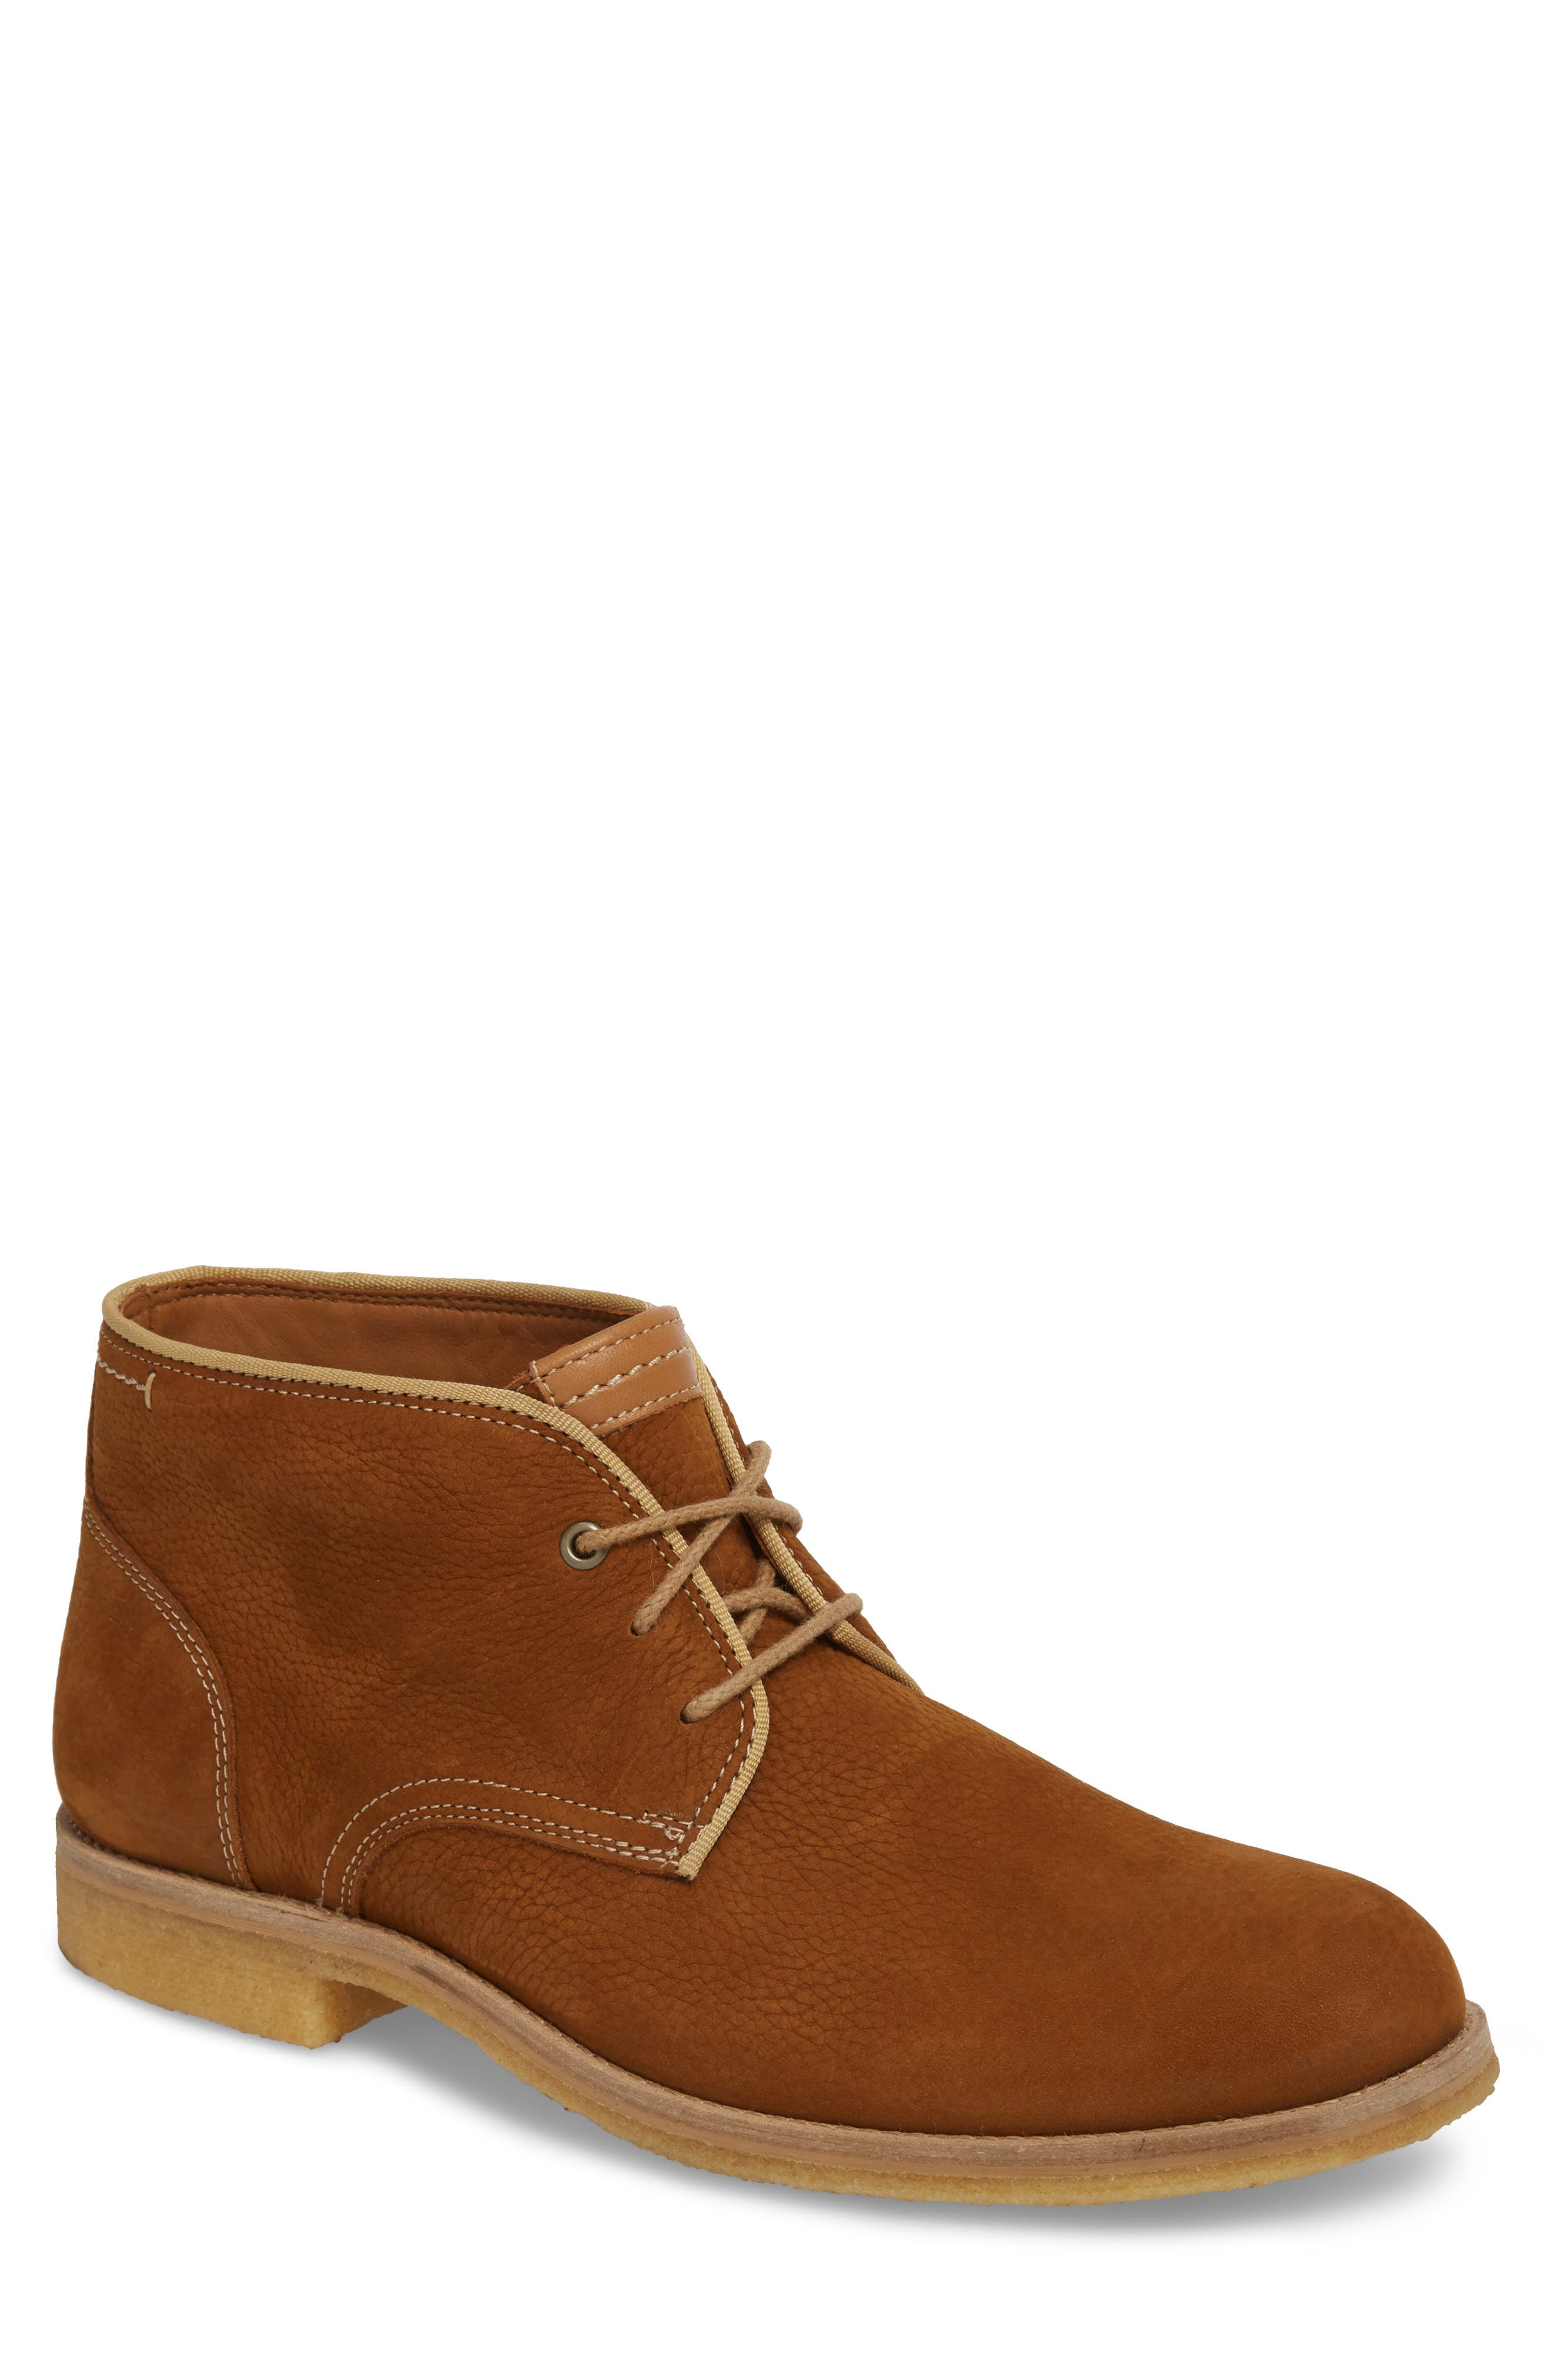 Howell Water Resistant Chukka Boot,                         Main,                         color, 240